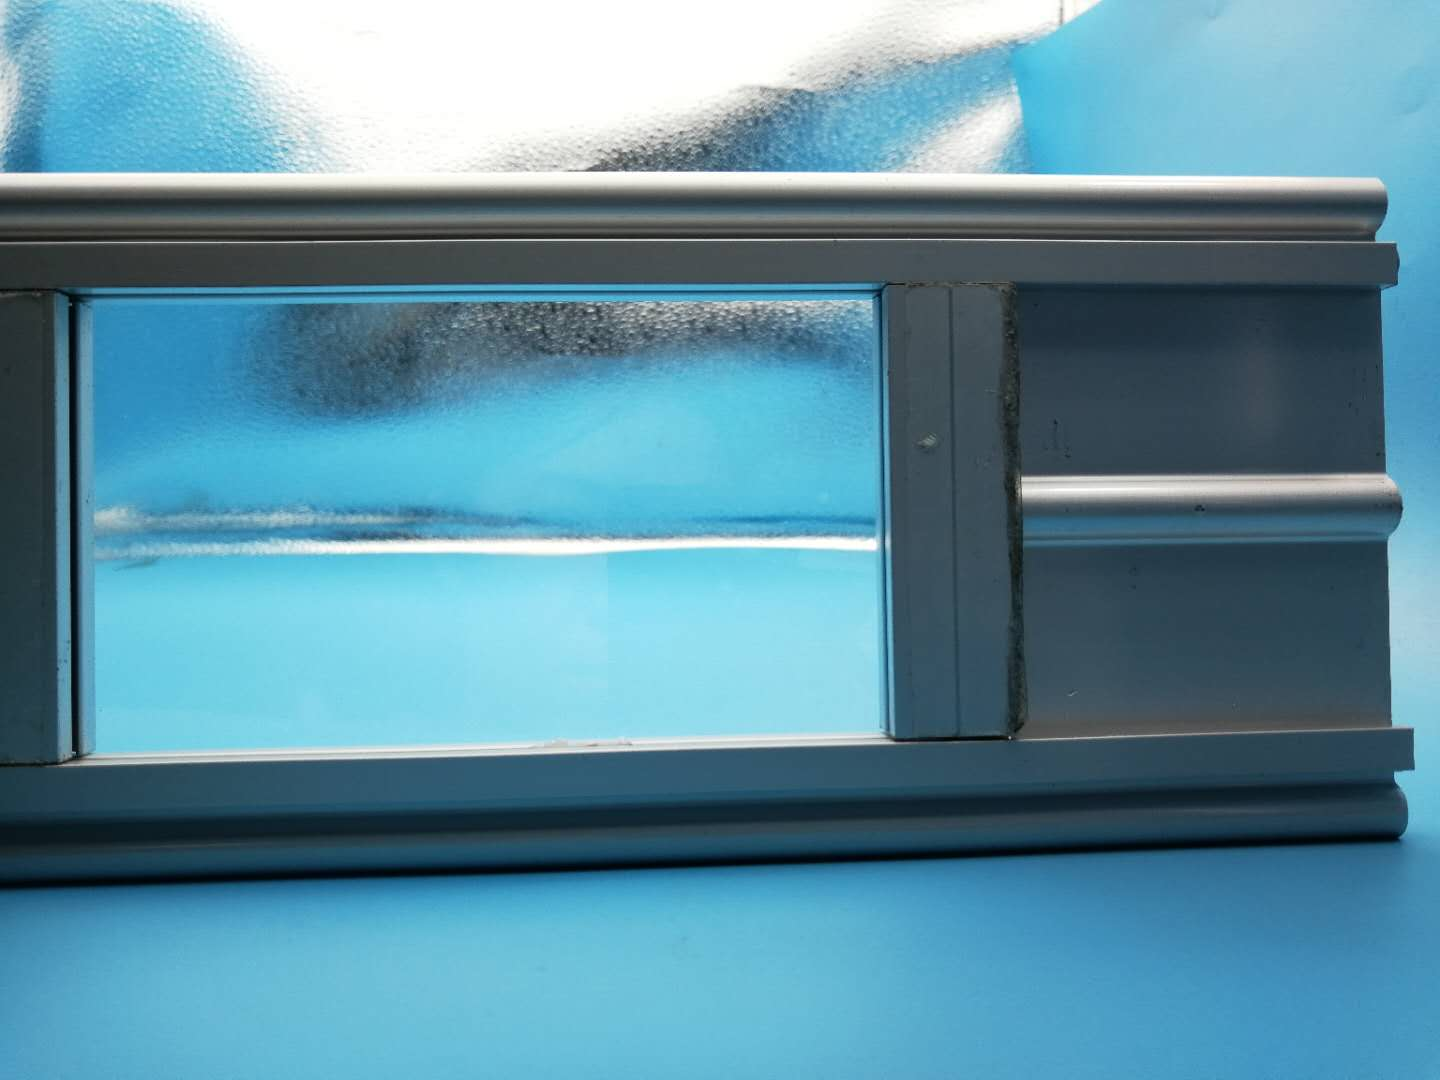 150mm Width Of The PC Slat Size 6000mmW*3000mmH 24 Hours Display Transparent Polycarbonate Folding Door